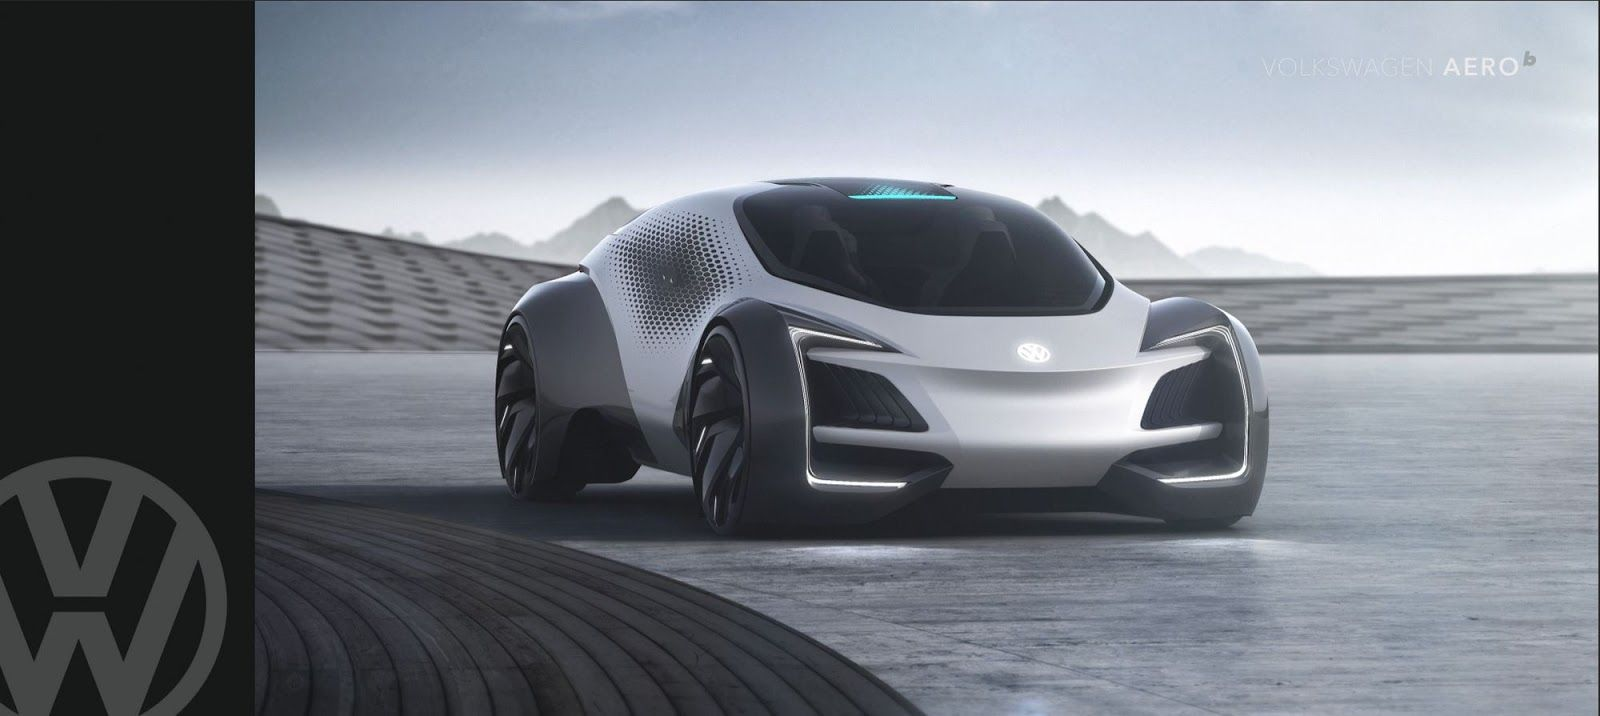 This Is A Concept Vw Needs To Make Happen Carscoops Volkswagen Volkswagen Car Concept